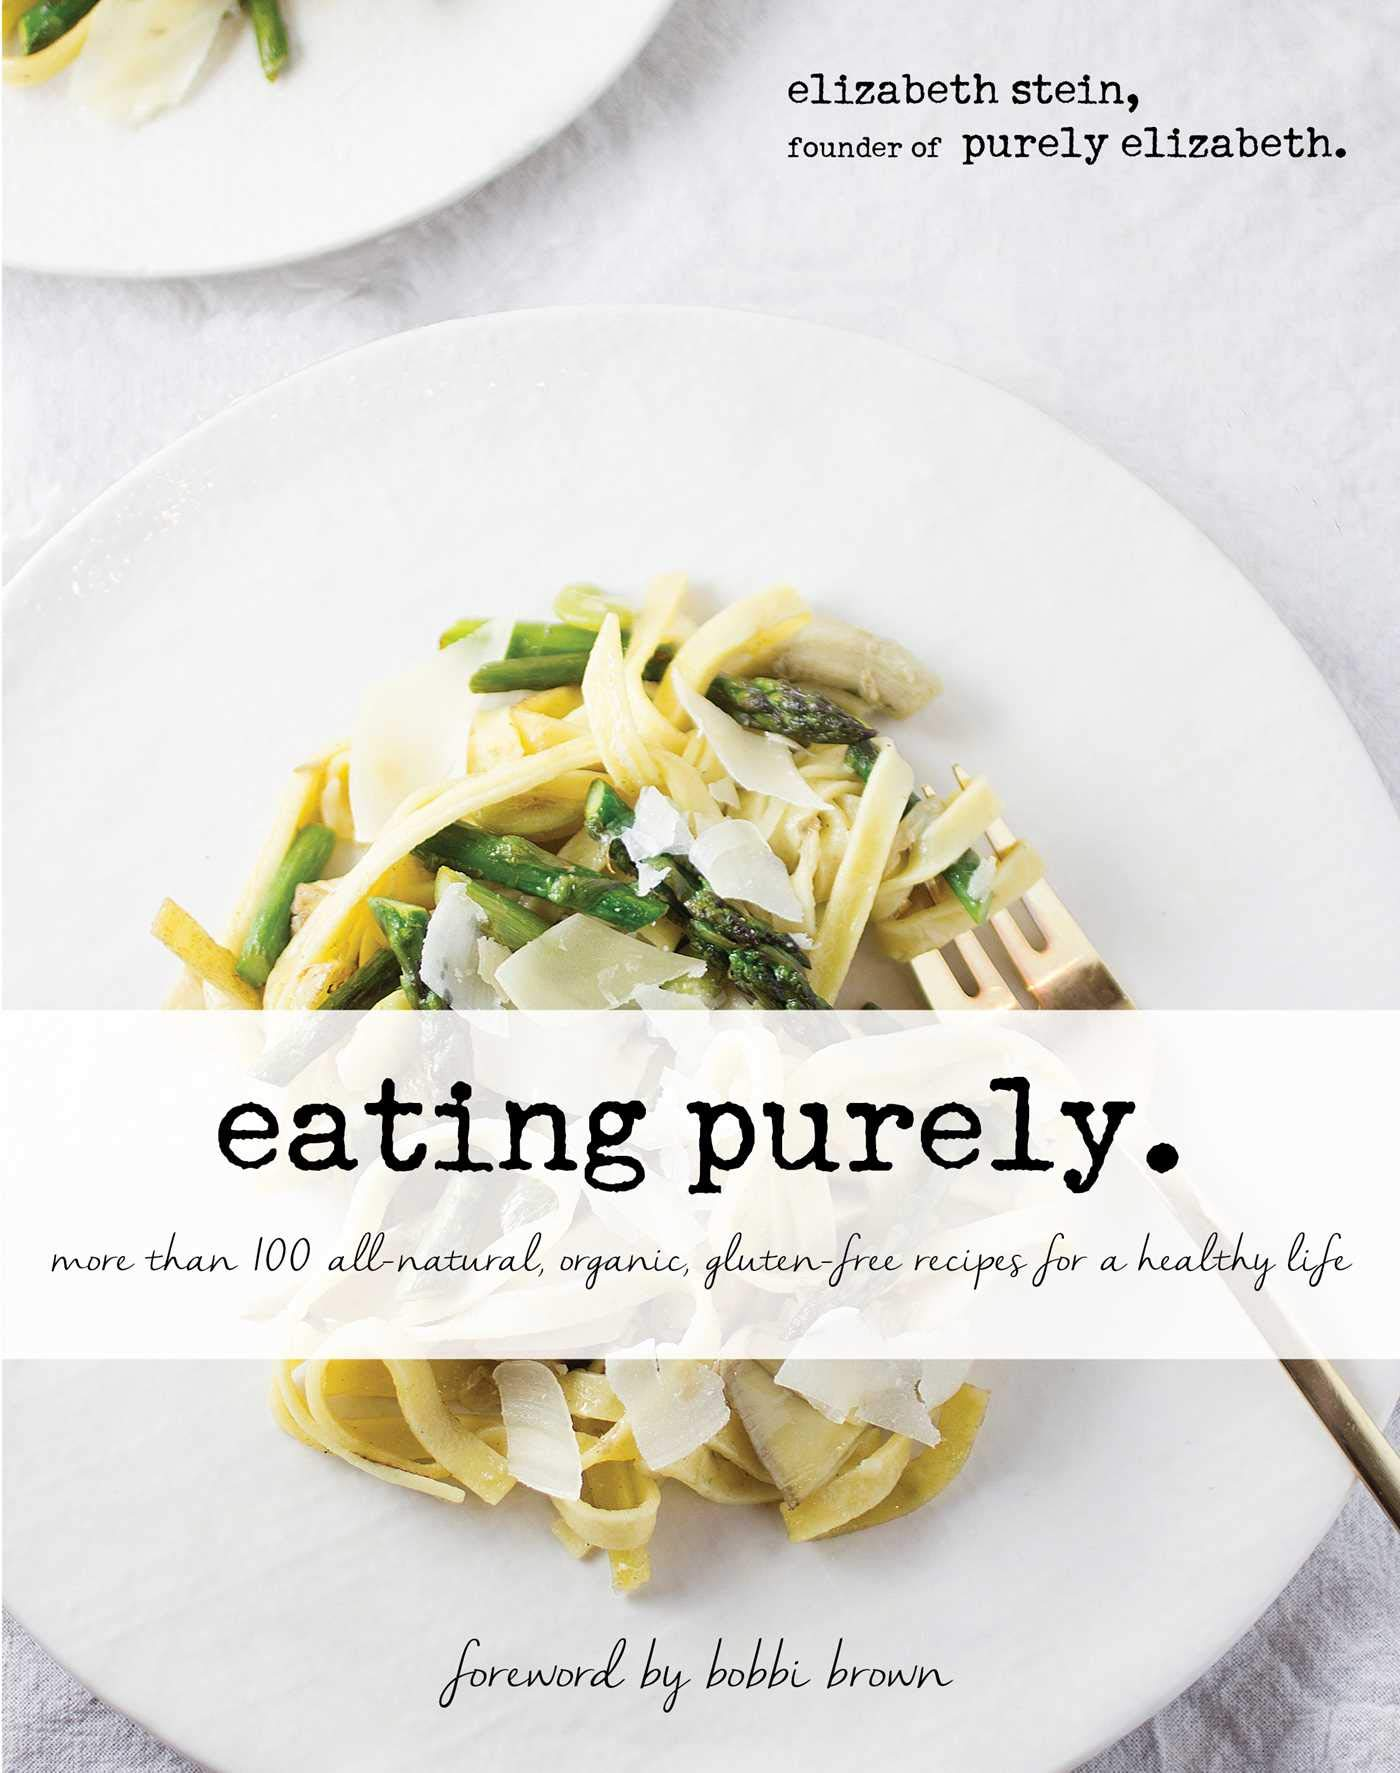 Eating Purely: More Than 100 All-Natural, Organic, Gluten-Free Recipes for a Healthy Life by Skyhorse